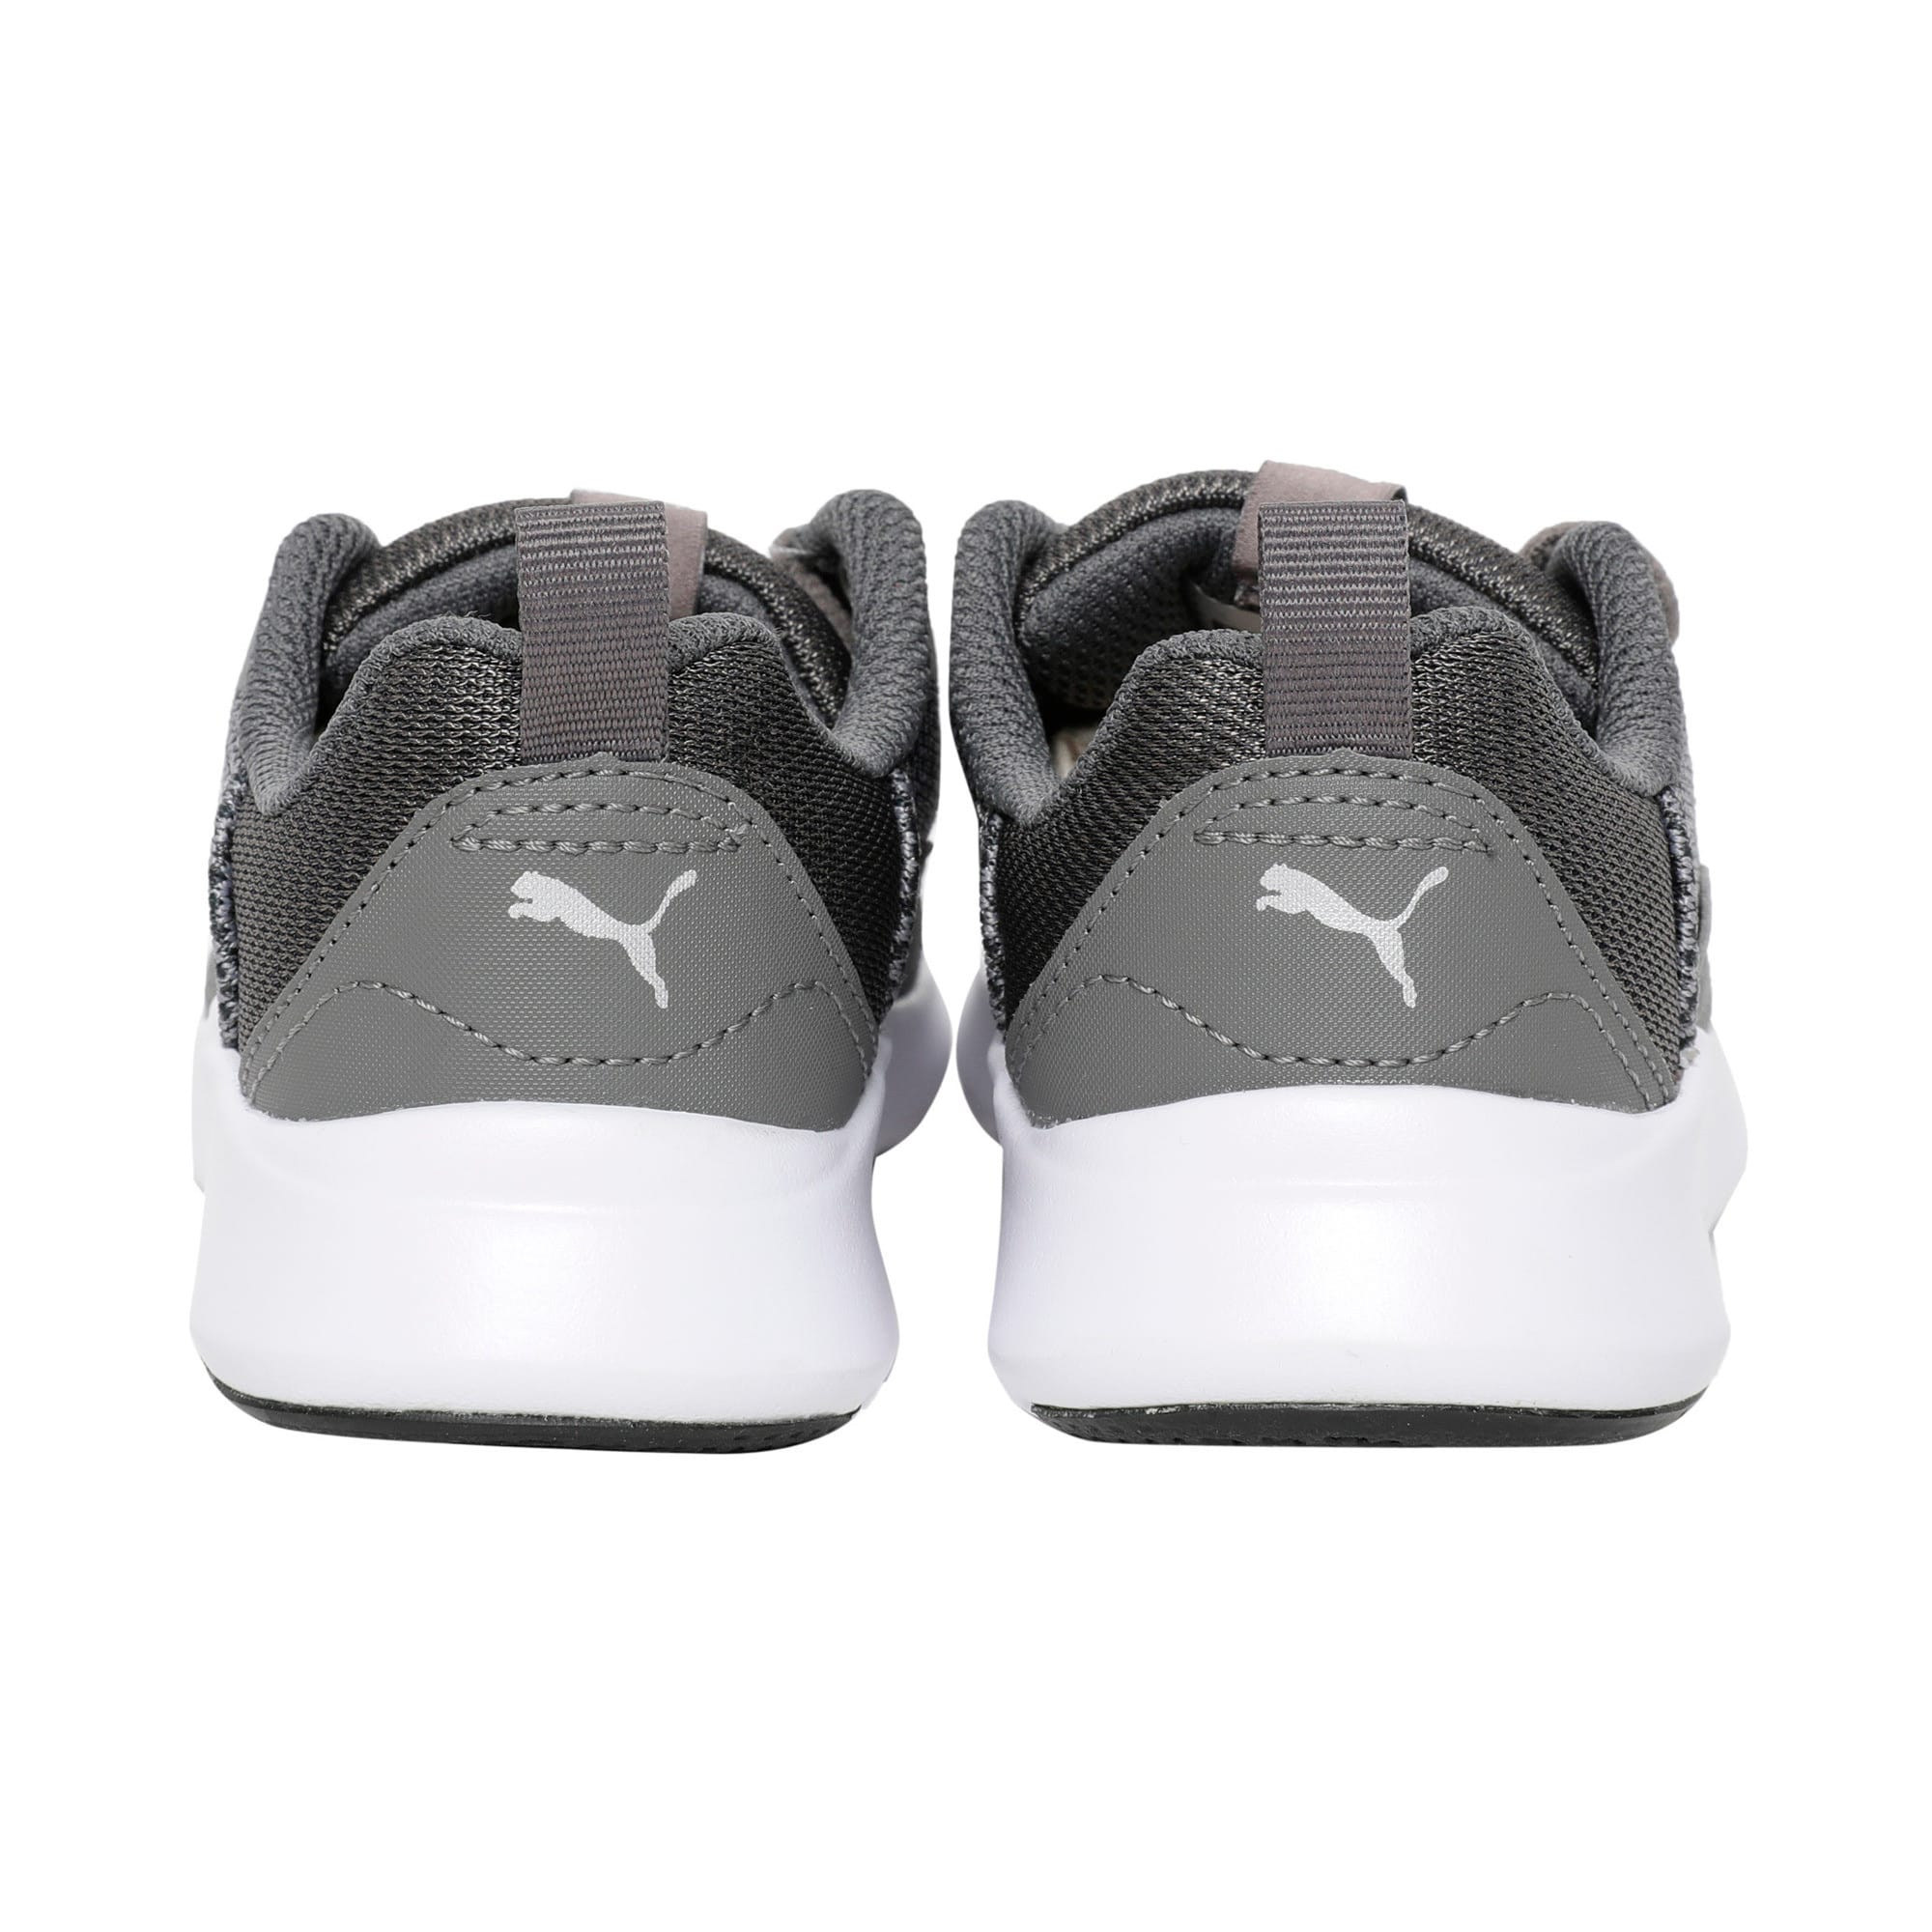 Thumbnail 3 of Wired Knit Kids' Trainers, Charcoal Gray-Puma Silver, medium-IND